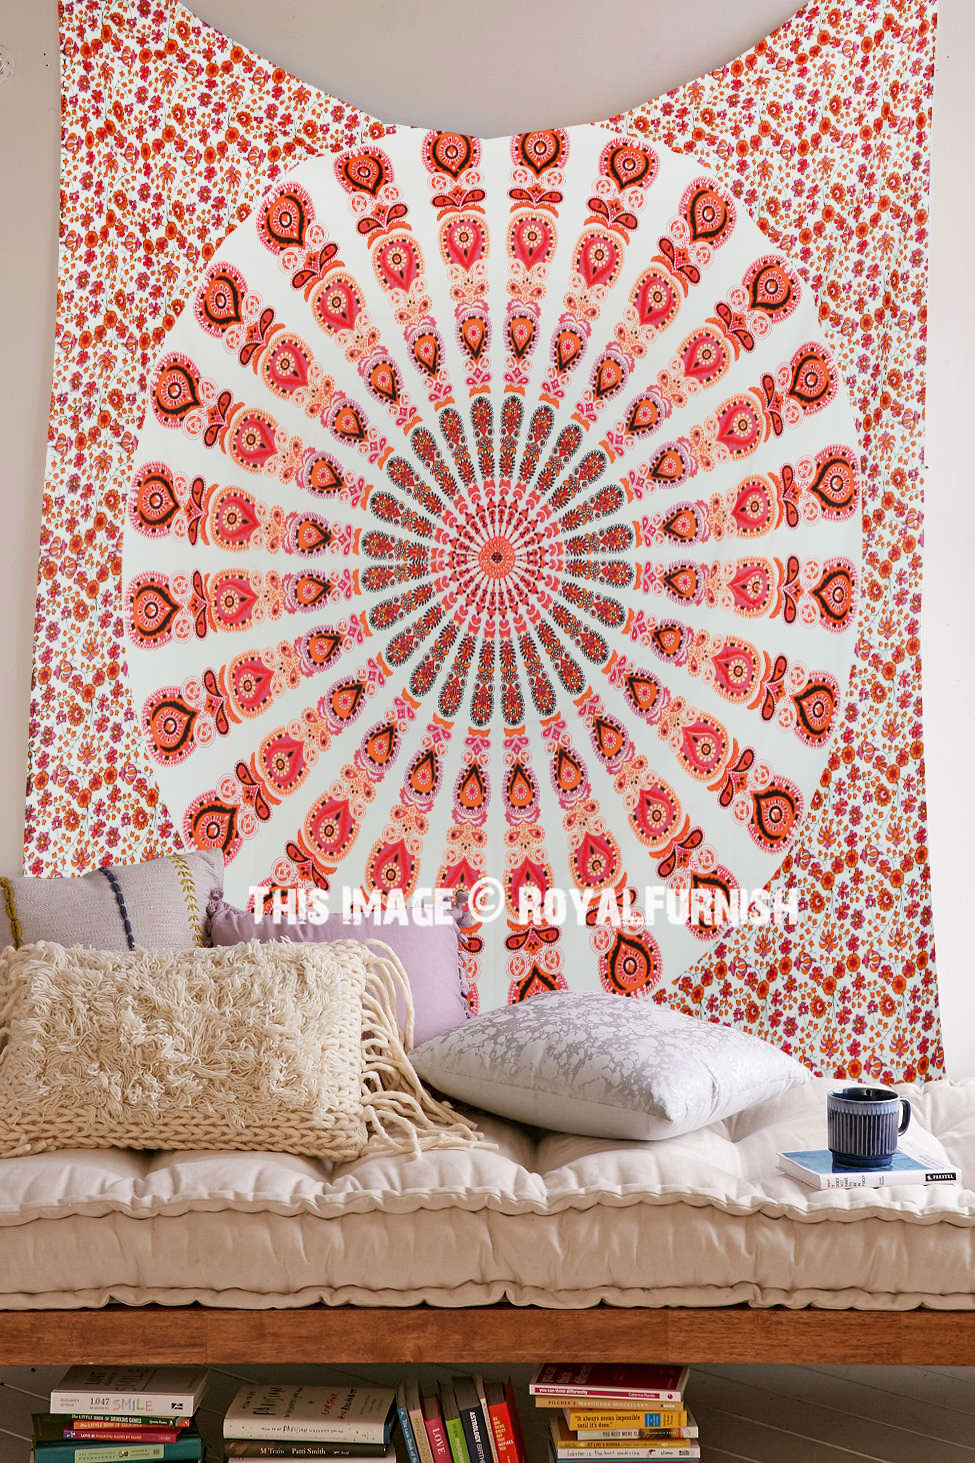 White & Orange Mixed Mandala Tapestry, Hippie Boho Wall Hanging Bedspread Regarding Most Current Blended Fabric Living Life Tapestries (View 6 of 20)